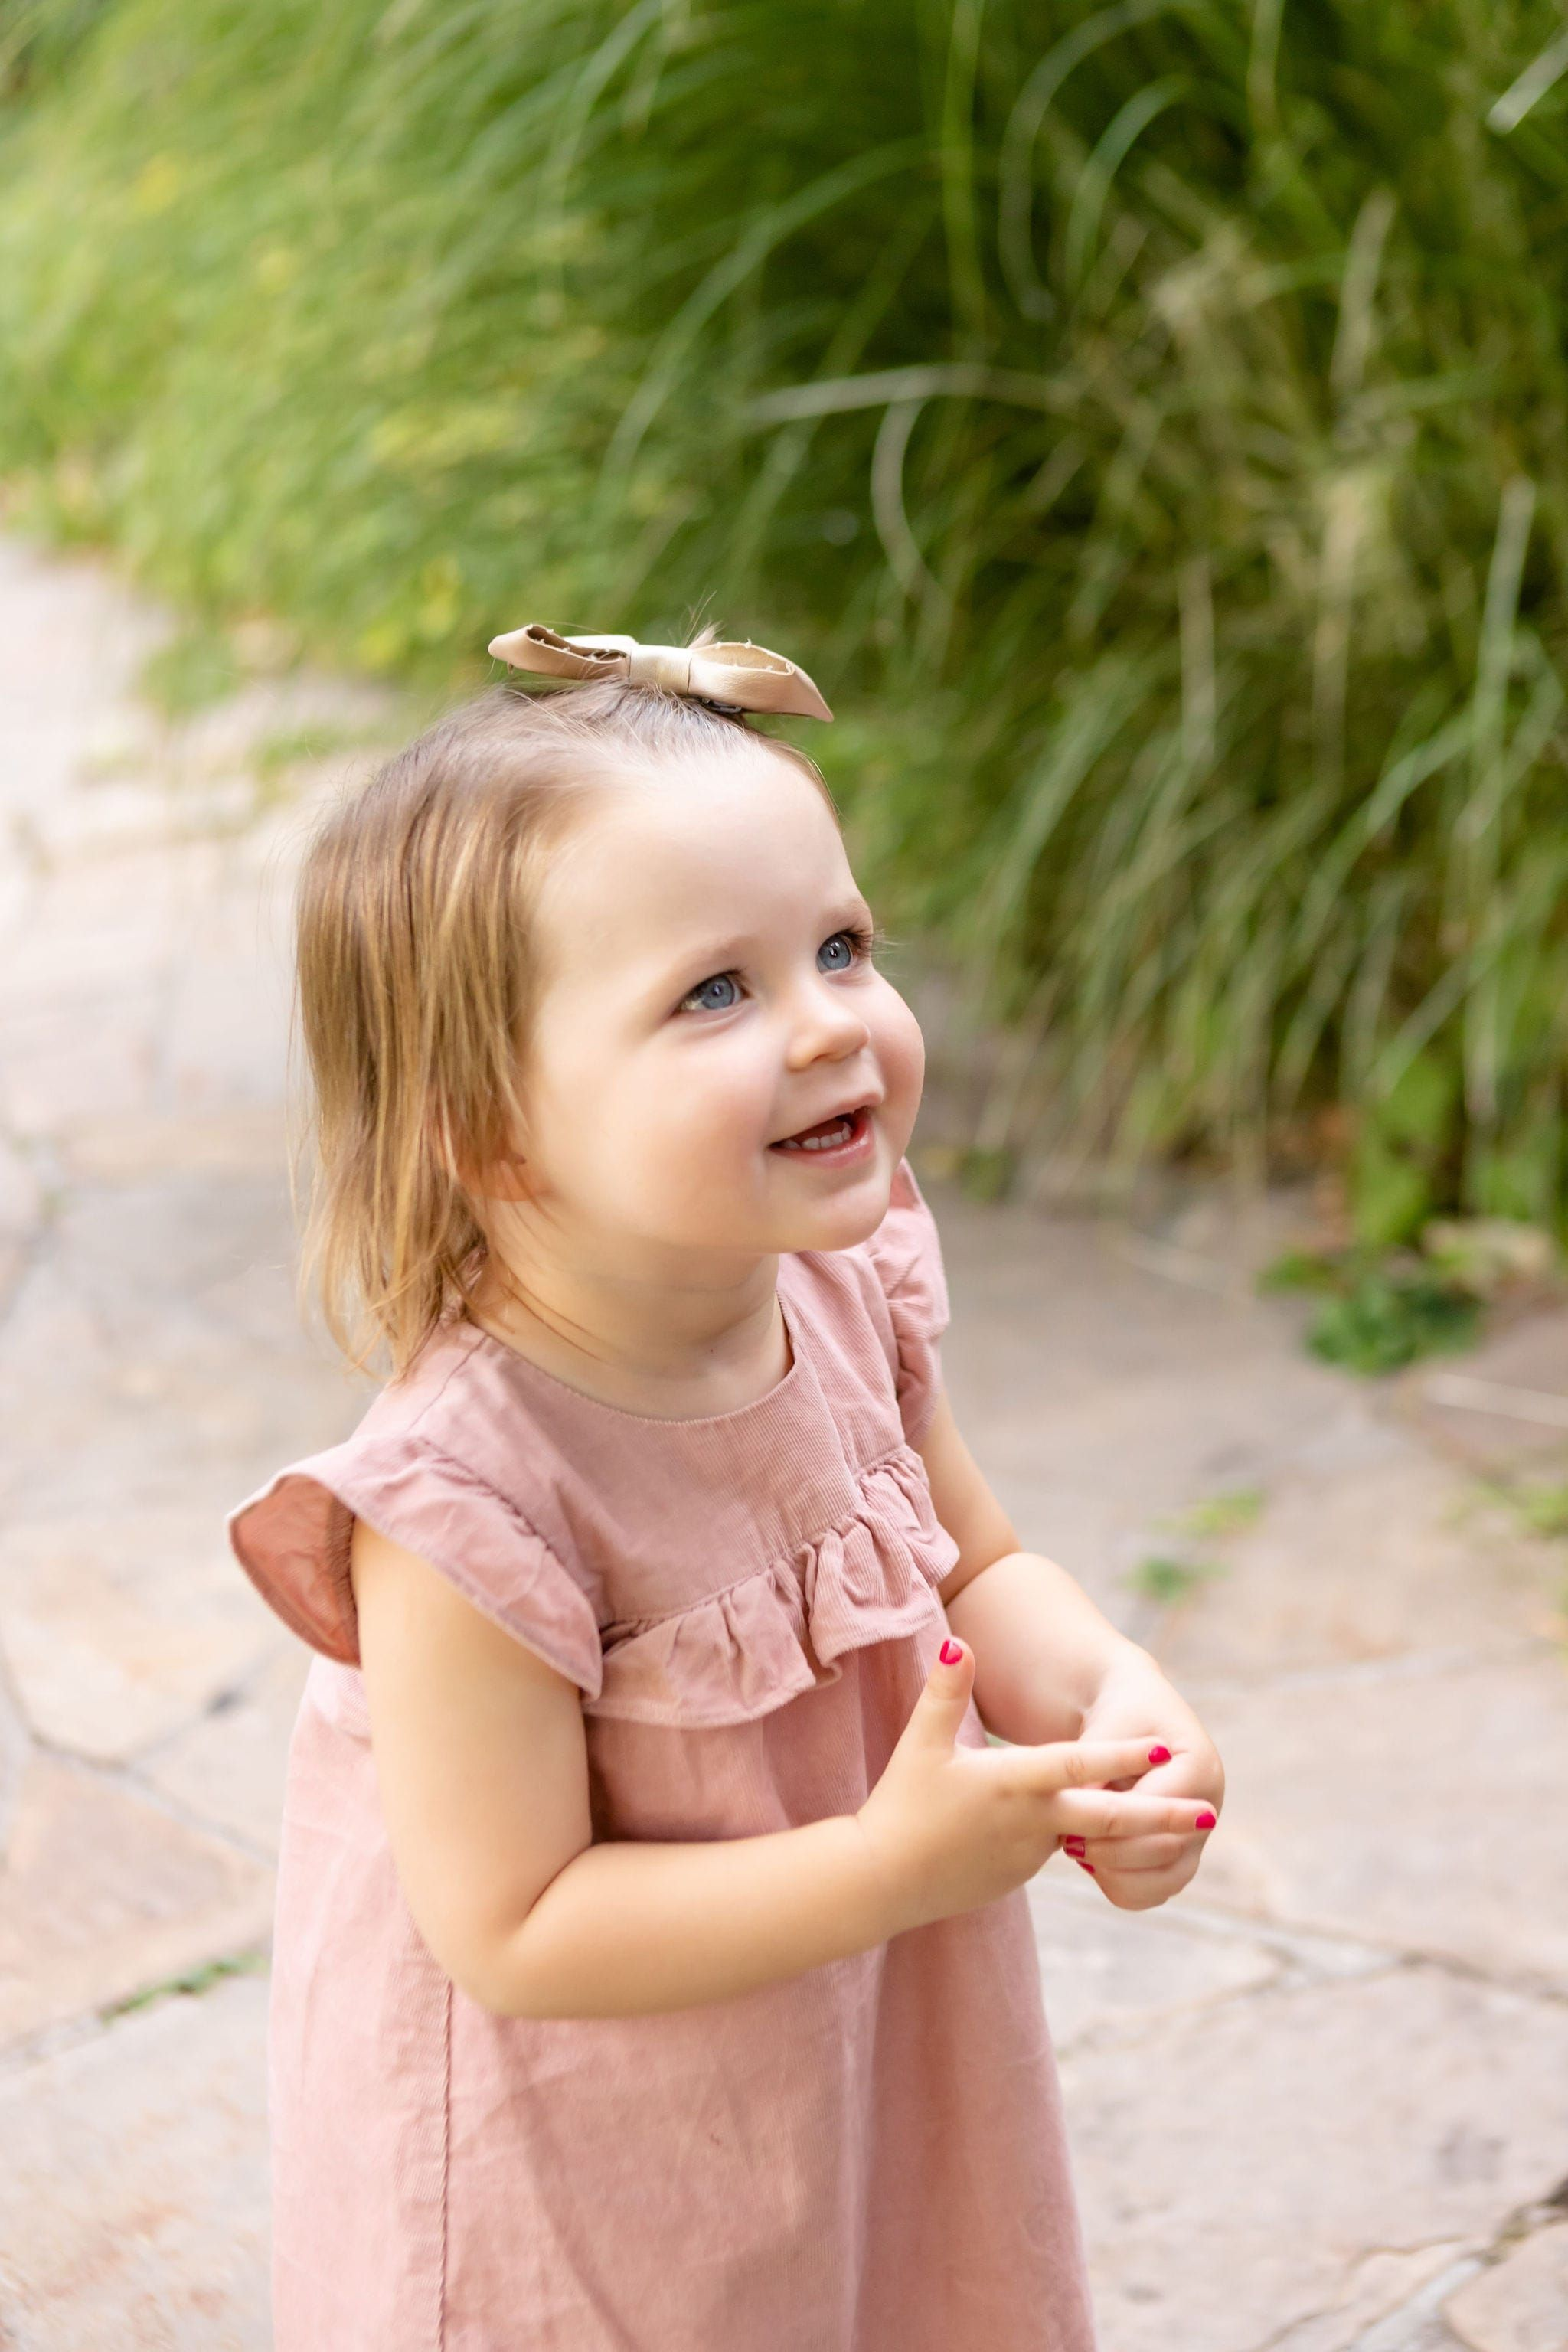 71e6626a5d5a4ced80a104fa35f1b41d - How To Get A Toddler To Smile For Pictures